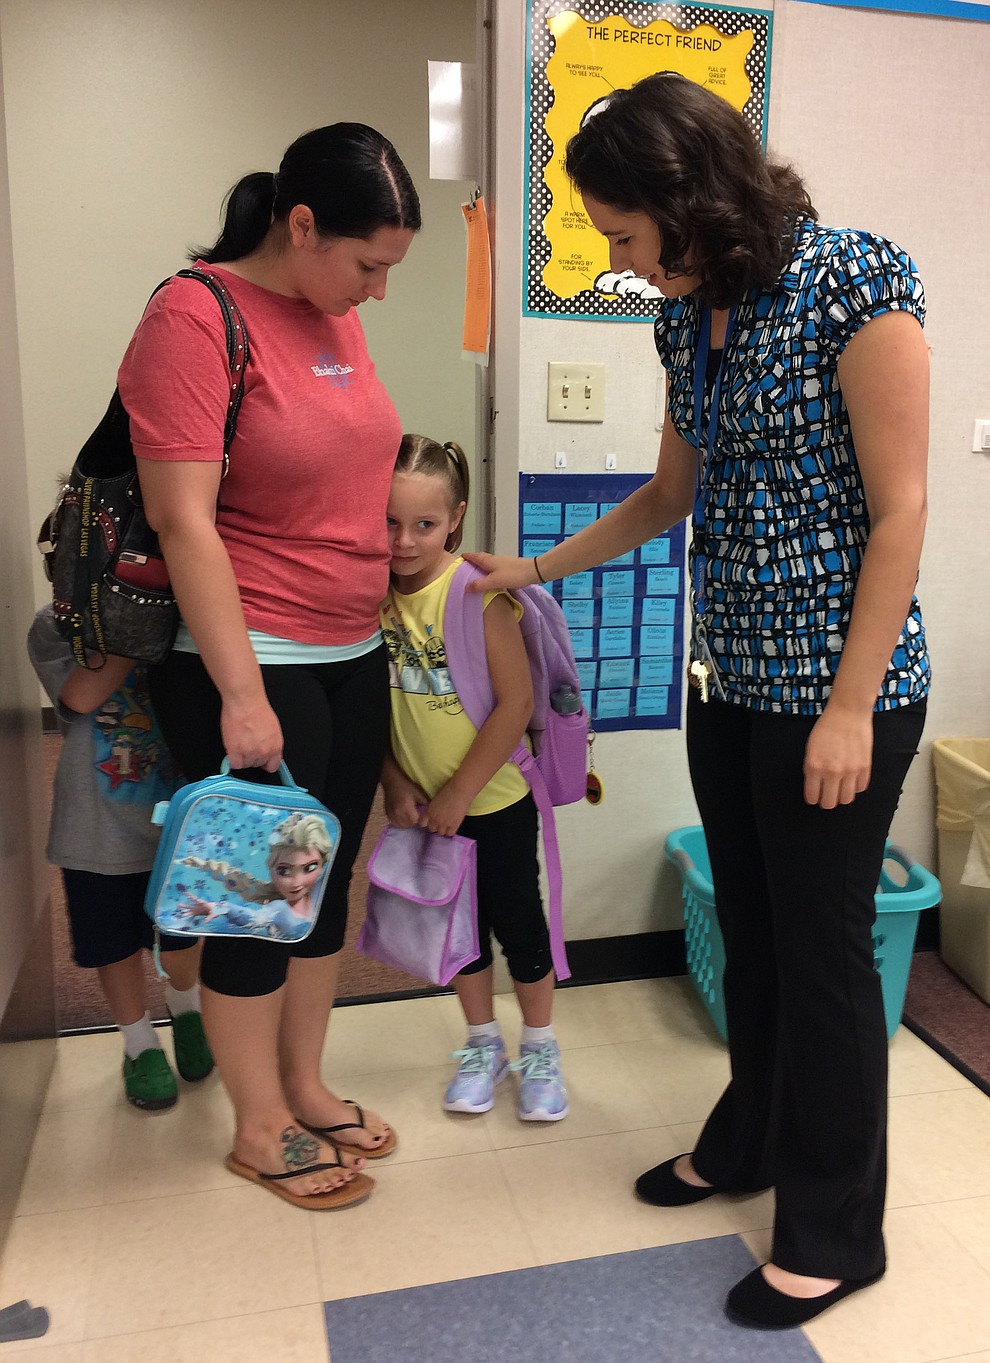 Lacey Whitcomb, with mother Michelle Whitcomb, meets Territorial Early Childhood Center First Grade Teacher Danielle Frederic before the start of the first day of school at Territorial Early Childhood Center Monday, Aug. 5. (Jason Wheeler/Courier)